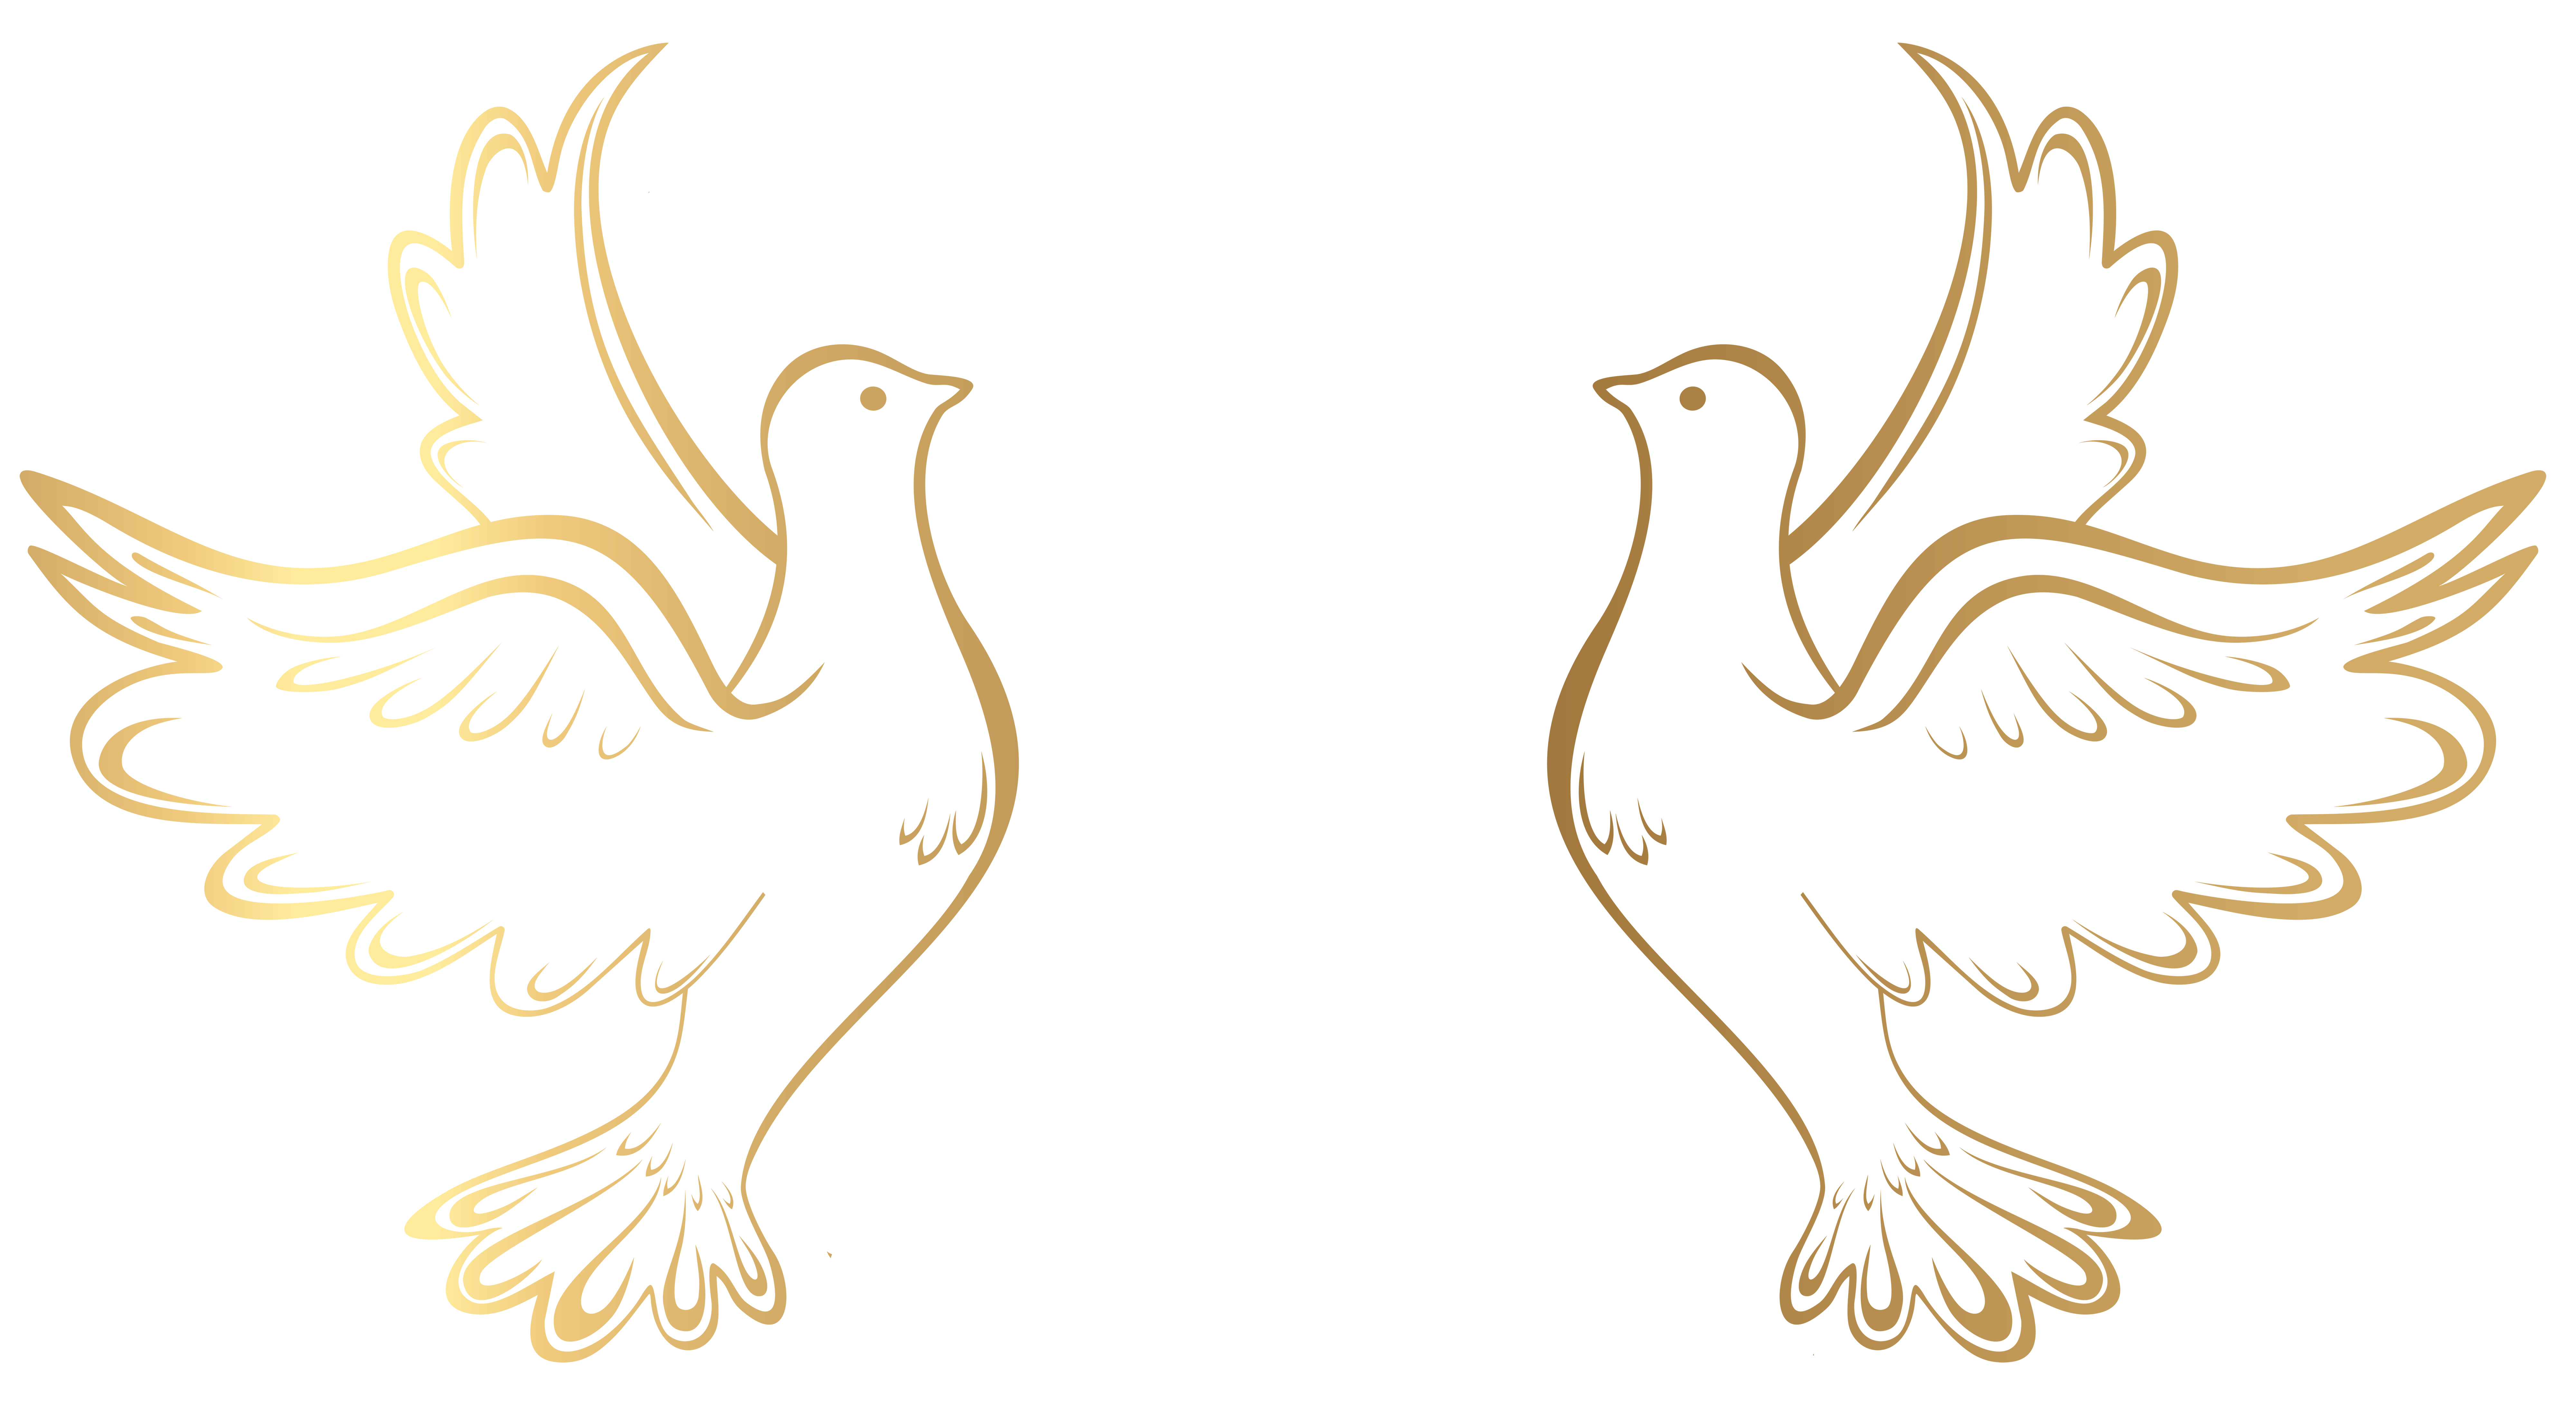 Gold Doves Decoration Transparent Png Clip Art Image Gallery Yopriceville High Quality Images And Transpare Art Journal Resources Dove Images Gold Drawing